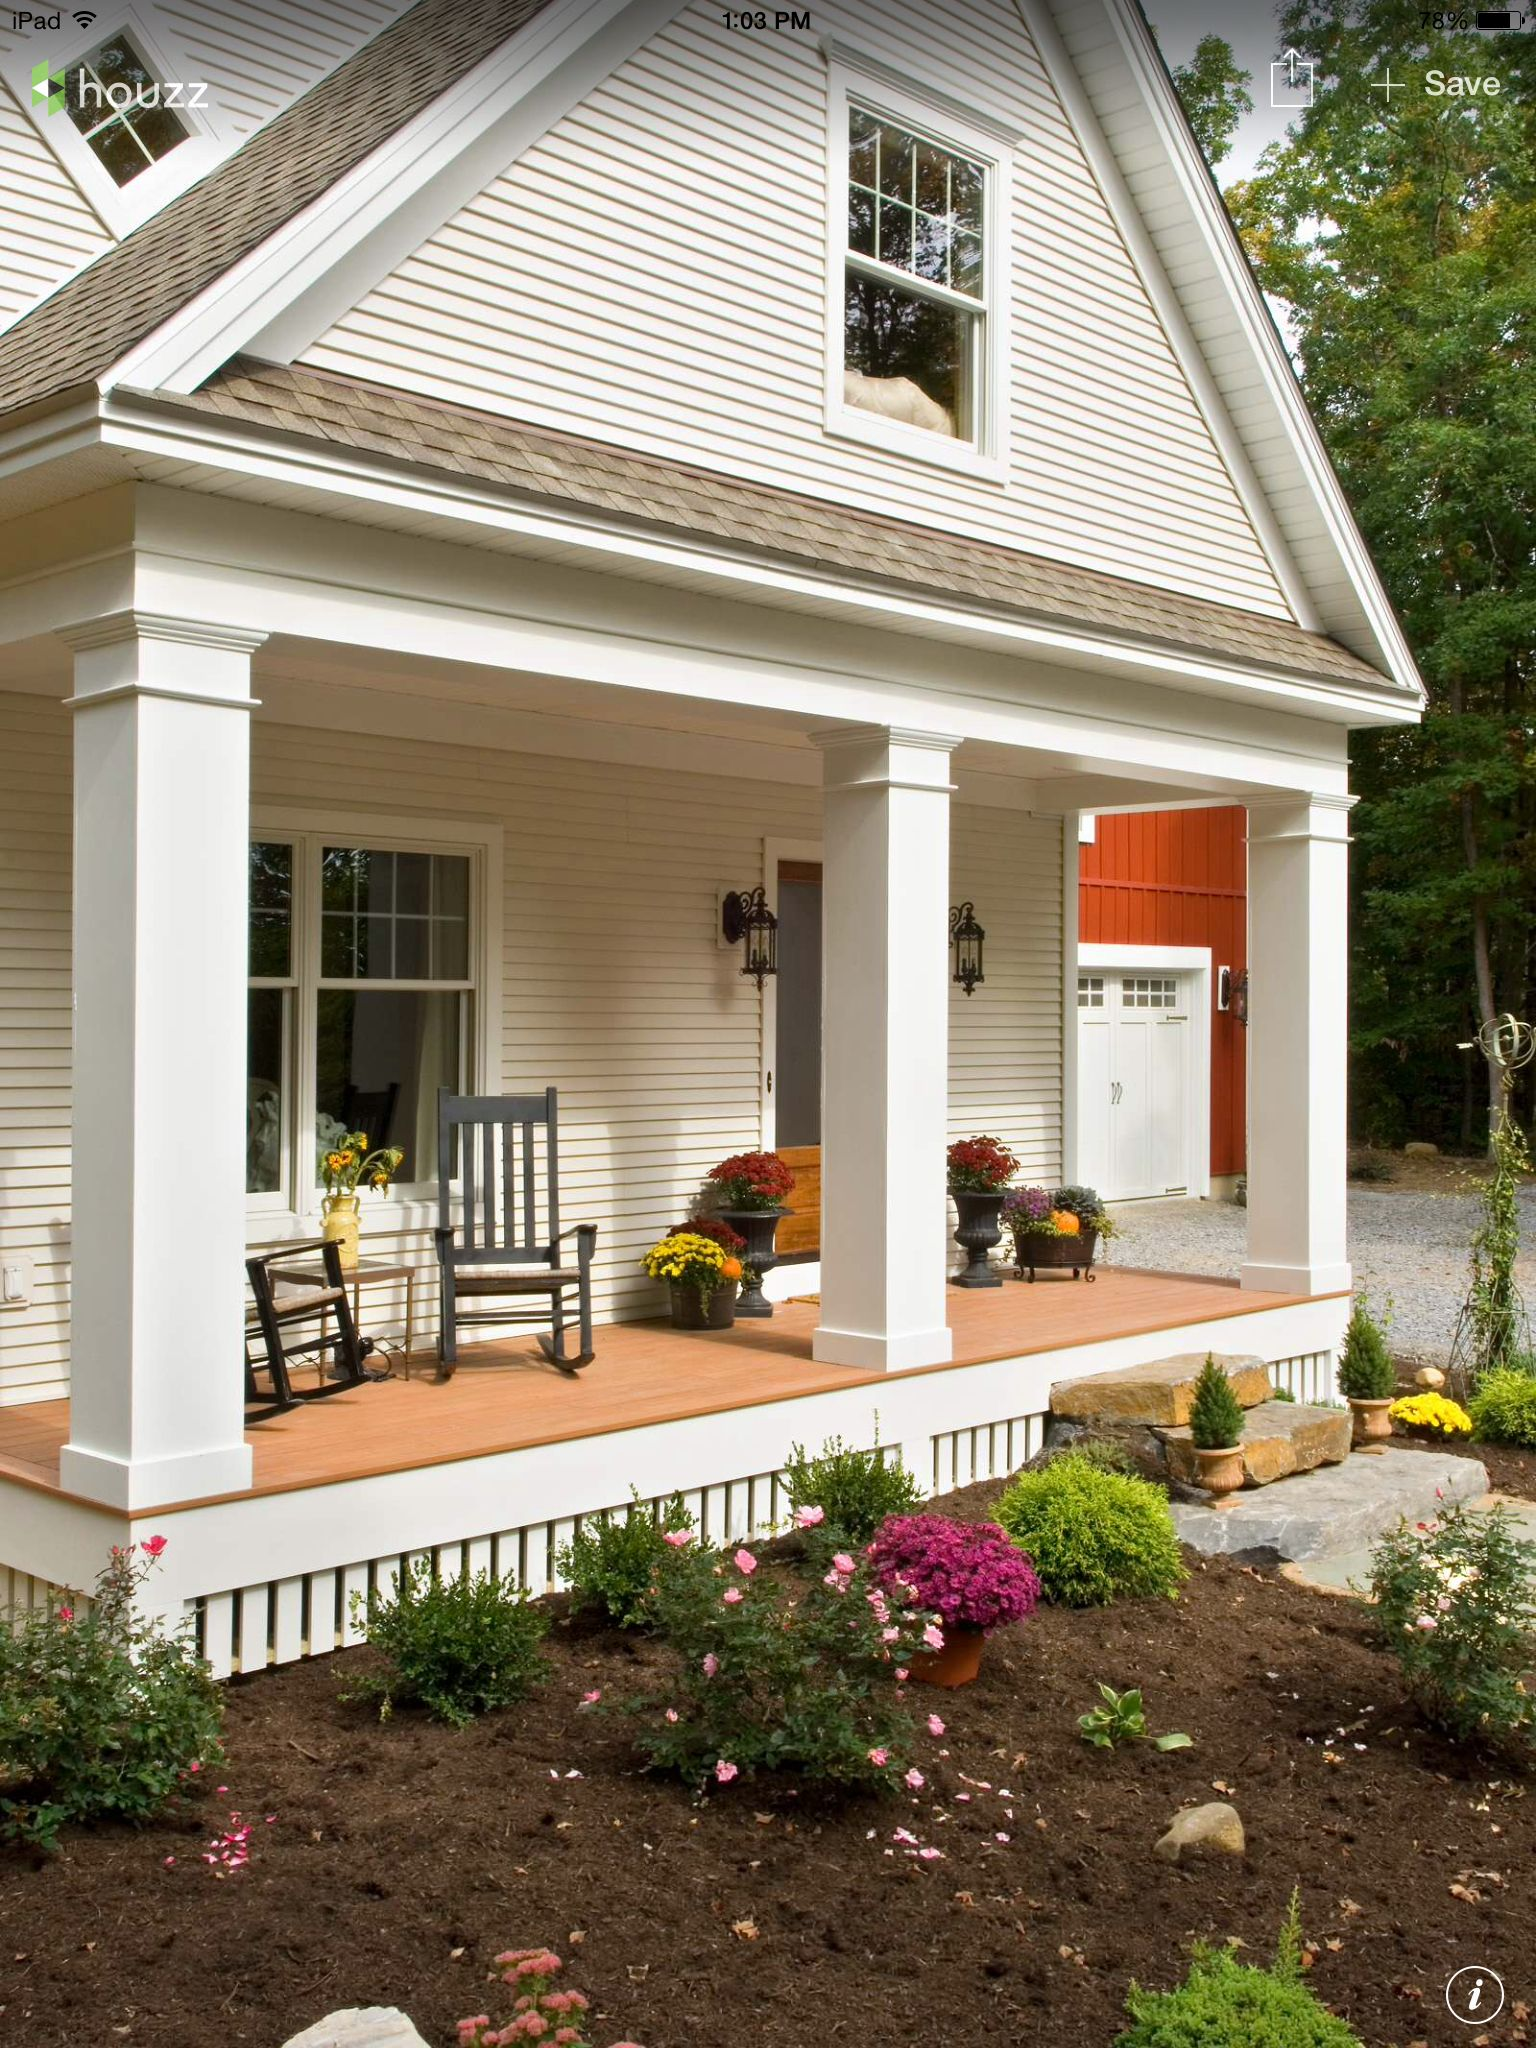 Farmhouse Front Porch Railing Ideas Open Porch No Railings So It 39s A Clear View Of Course A